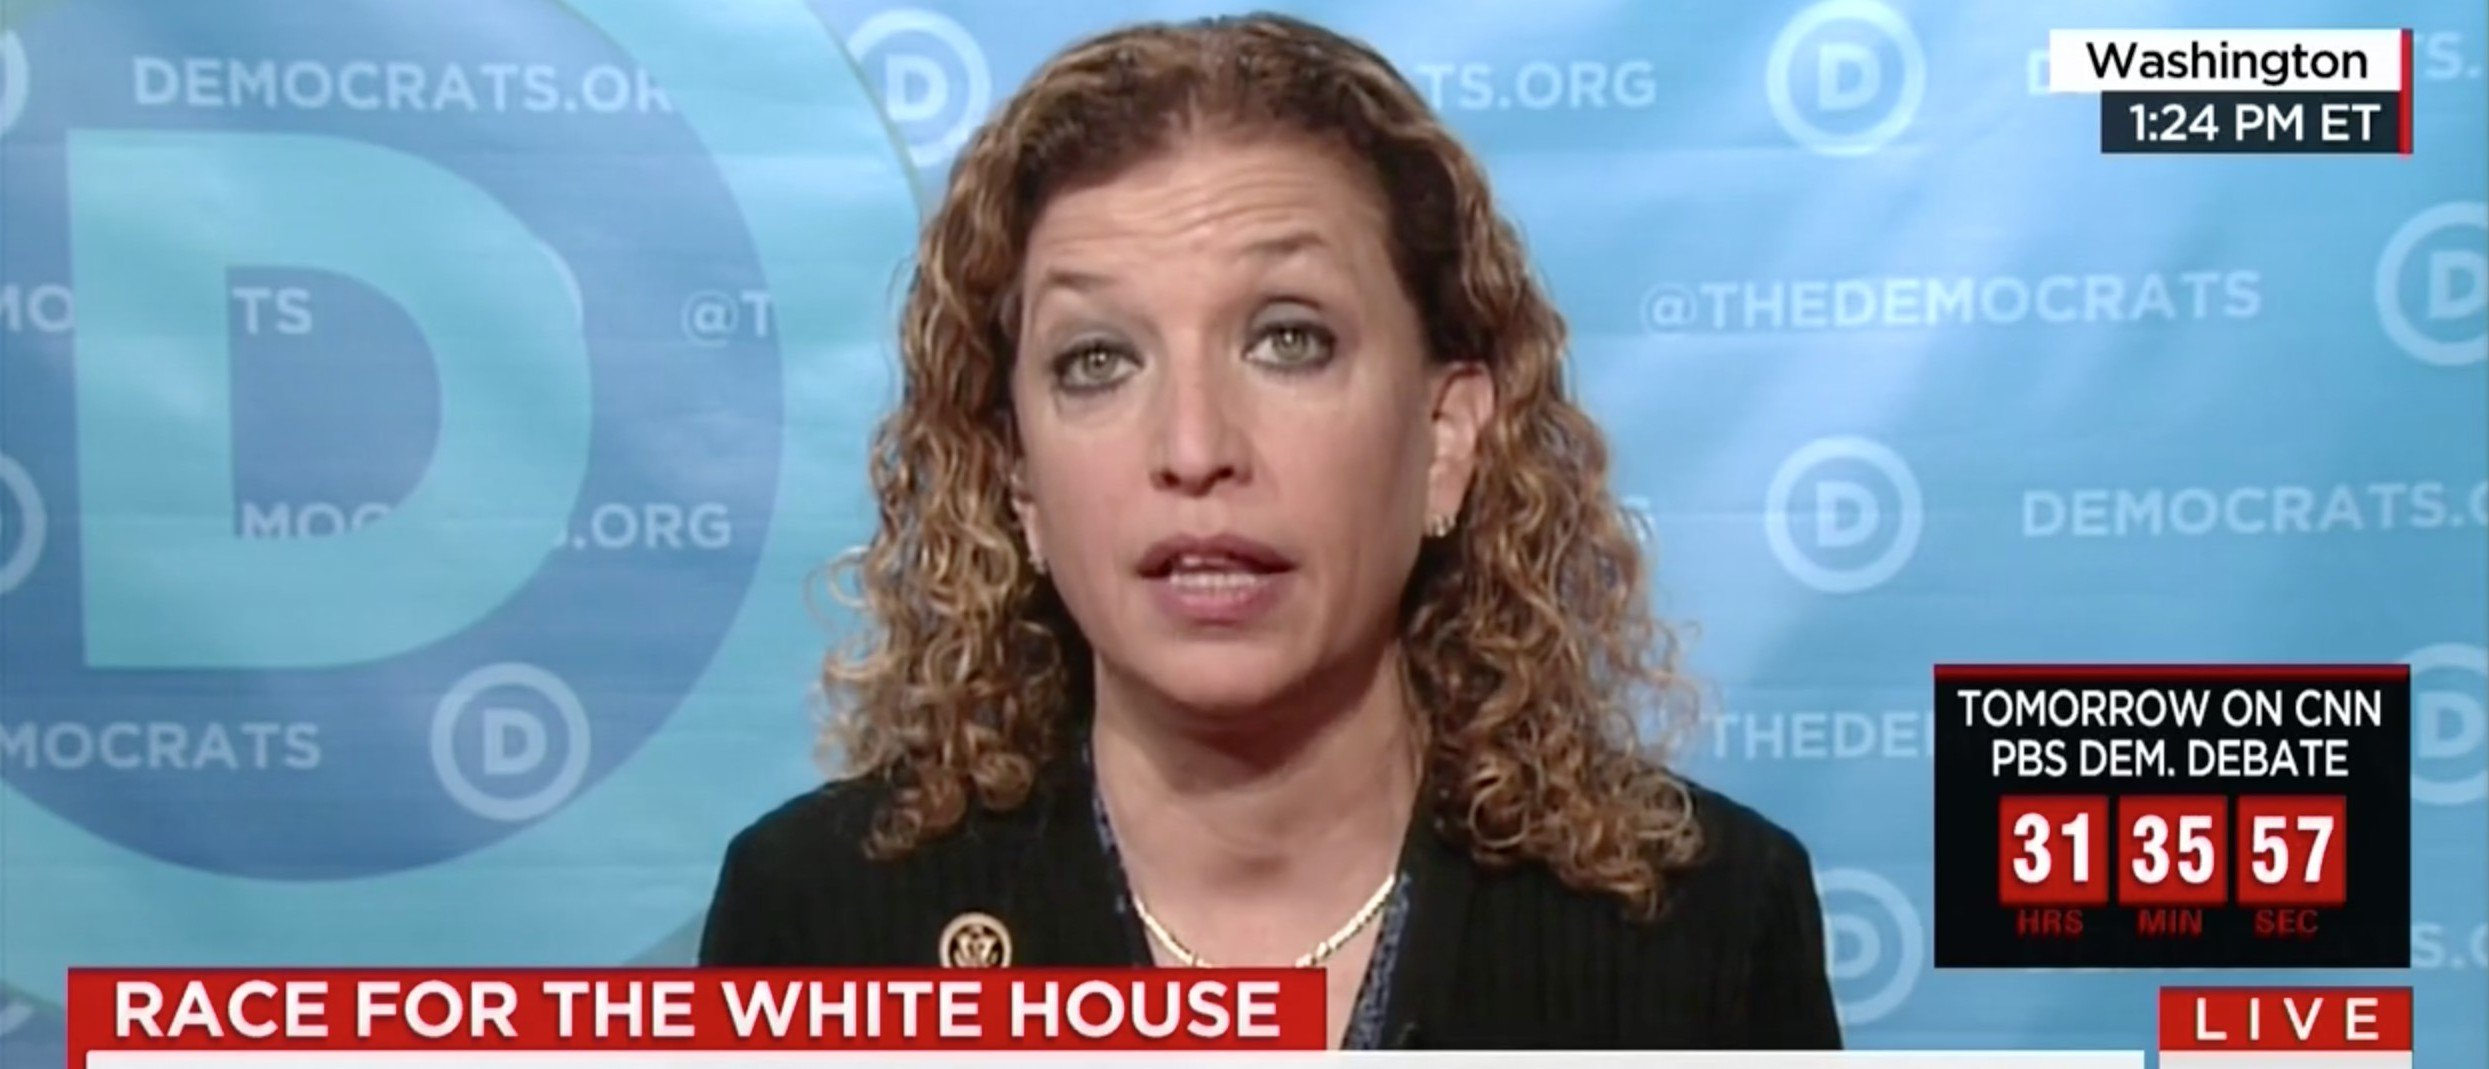 Debbie Wasserman Schultz, Screen shot CNN